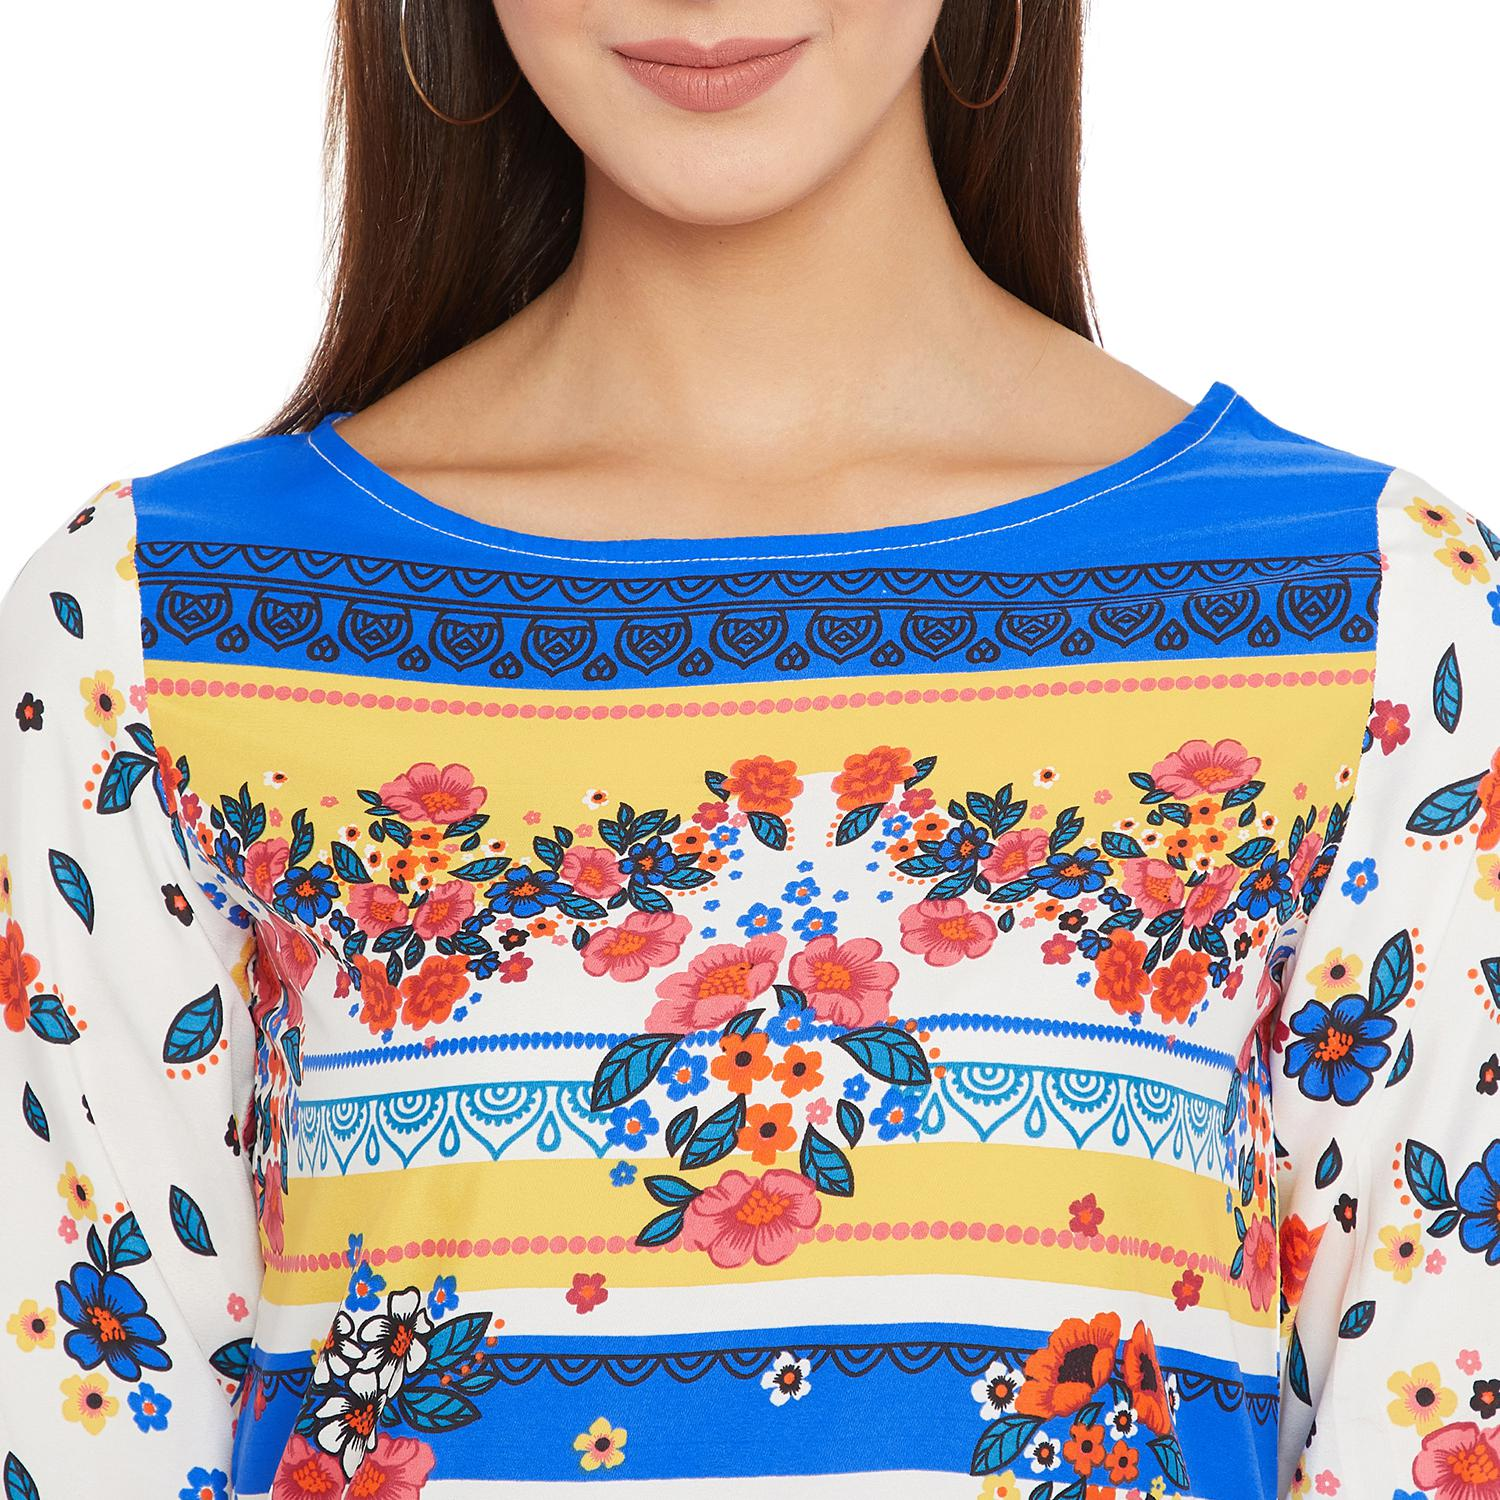 Toshee - Women's White and Multicolor Floral Printed Crepe Top